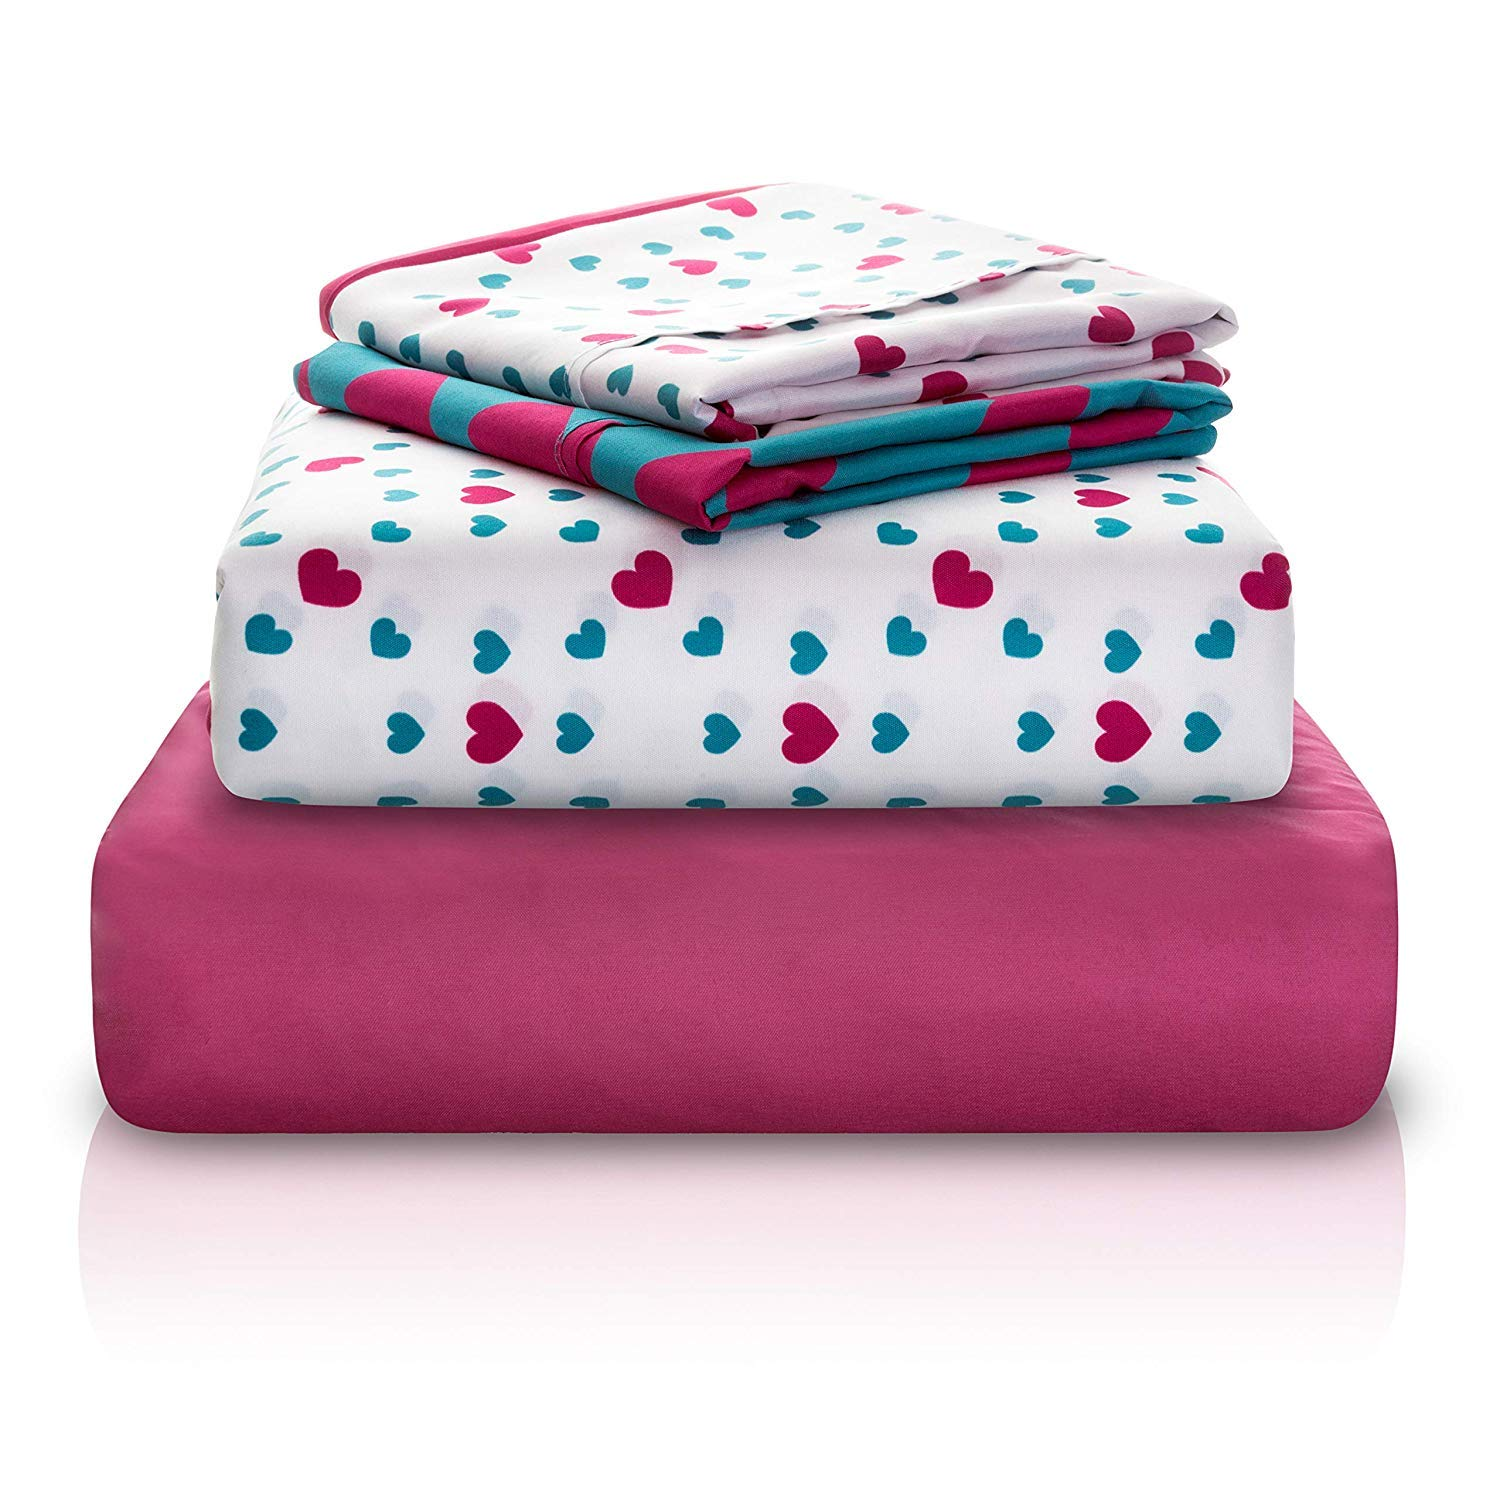 Chital Full Bed Sheets for Girls | 4 Pc Red & Green Hearts Print | 1 Flat & 1 Fitted Sheet, 2 Pillow Cases | Durable Super-Soft, Double-Brushed Microfiber | 15'' Deep by Chital